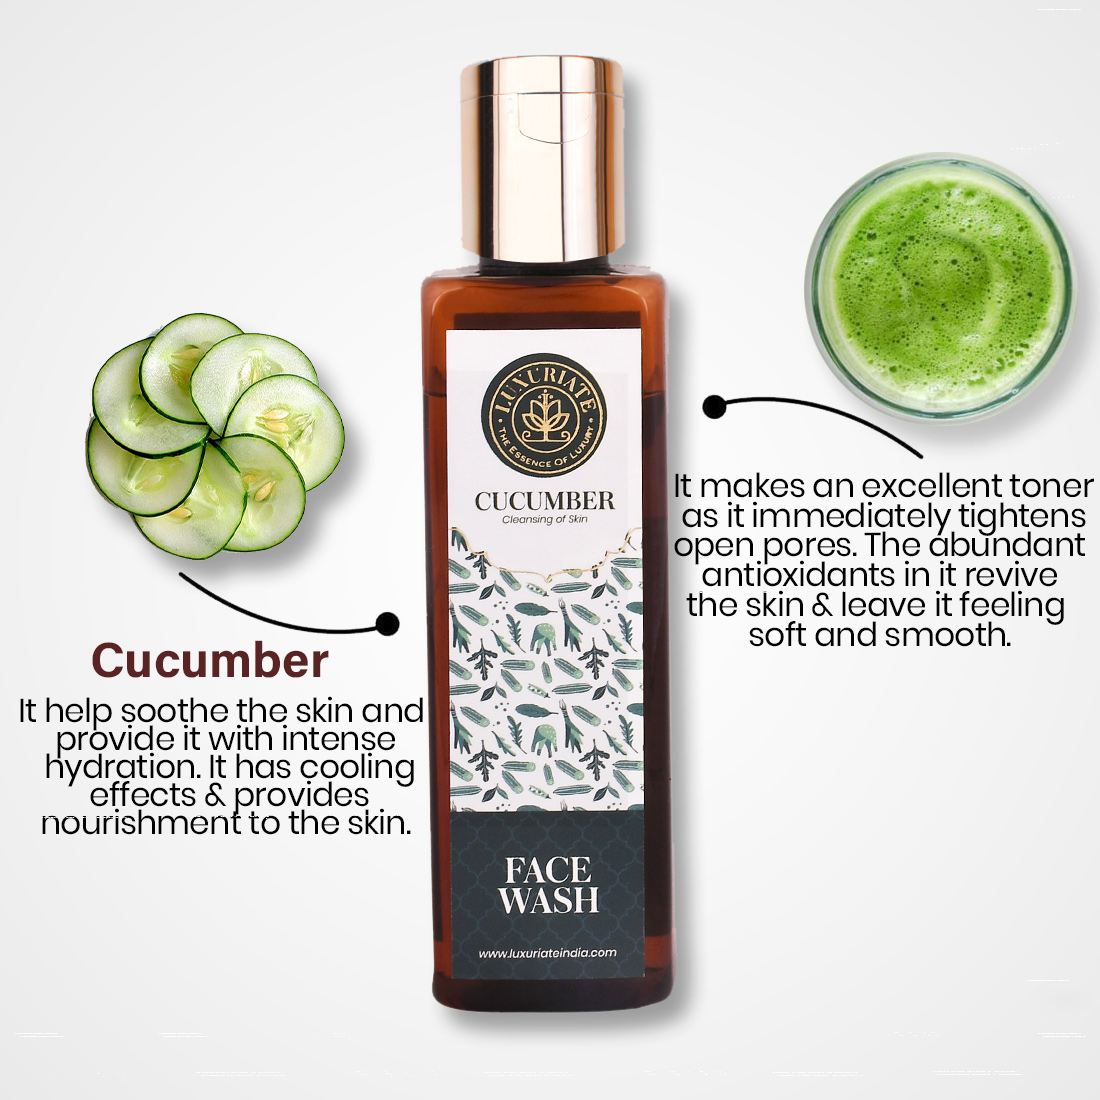 LUXURIATE Cucumber Herbal Cleansing Face Wash for Men and Women, 100 ml